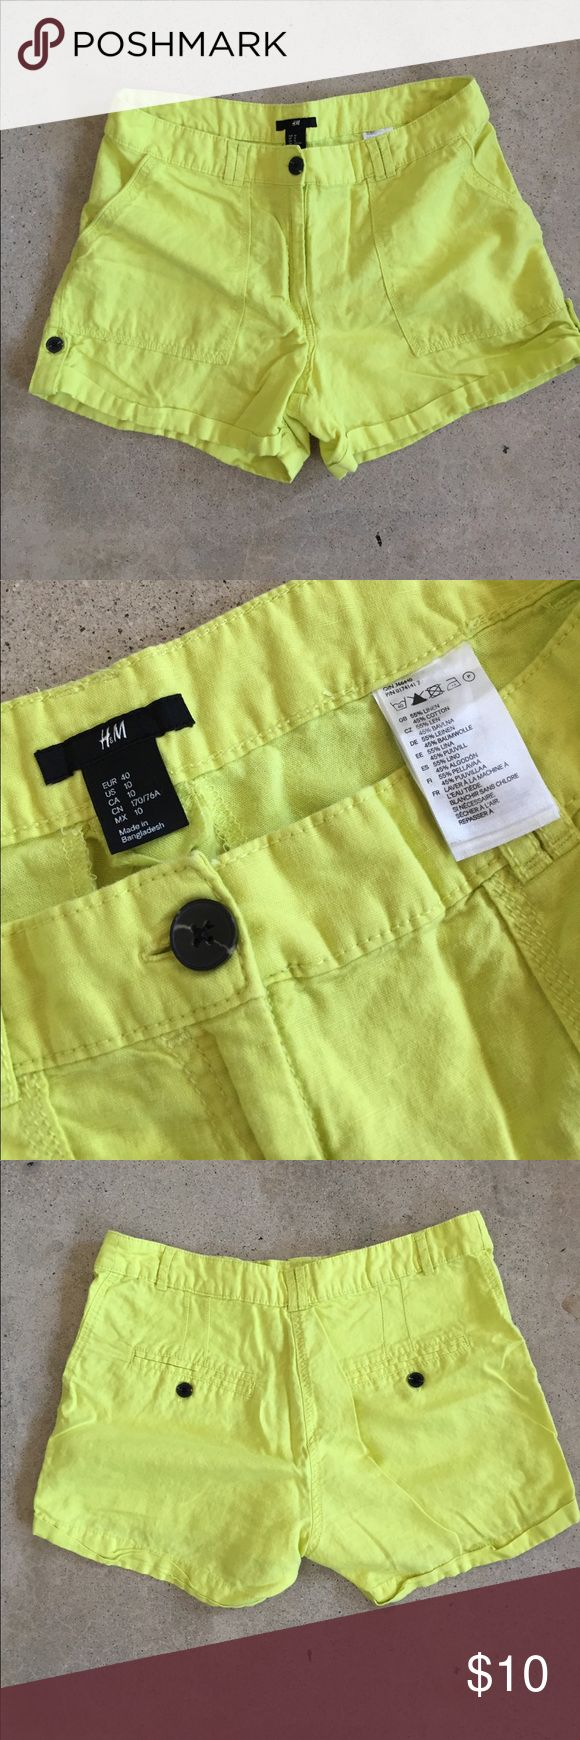 H&M Linen and Cotton Neon Yellow Shorts - Sz 10 H&M Linen and Cotton Neon Yellow Shorts. Size 10 H&M Shorts